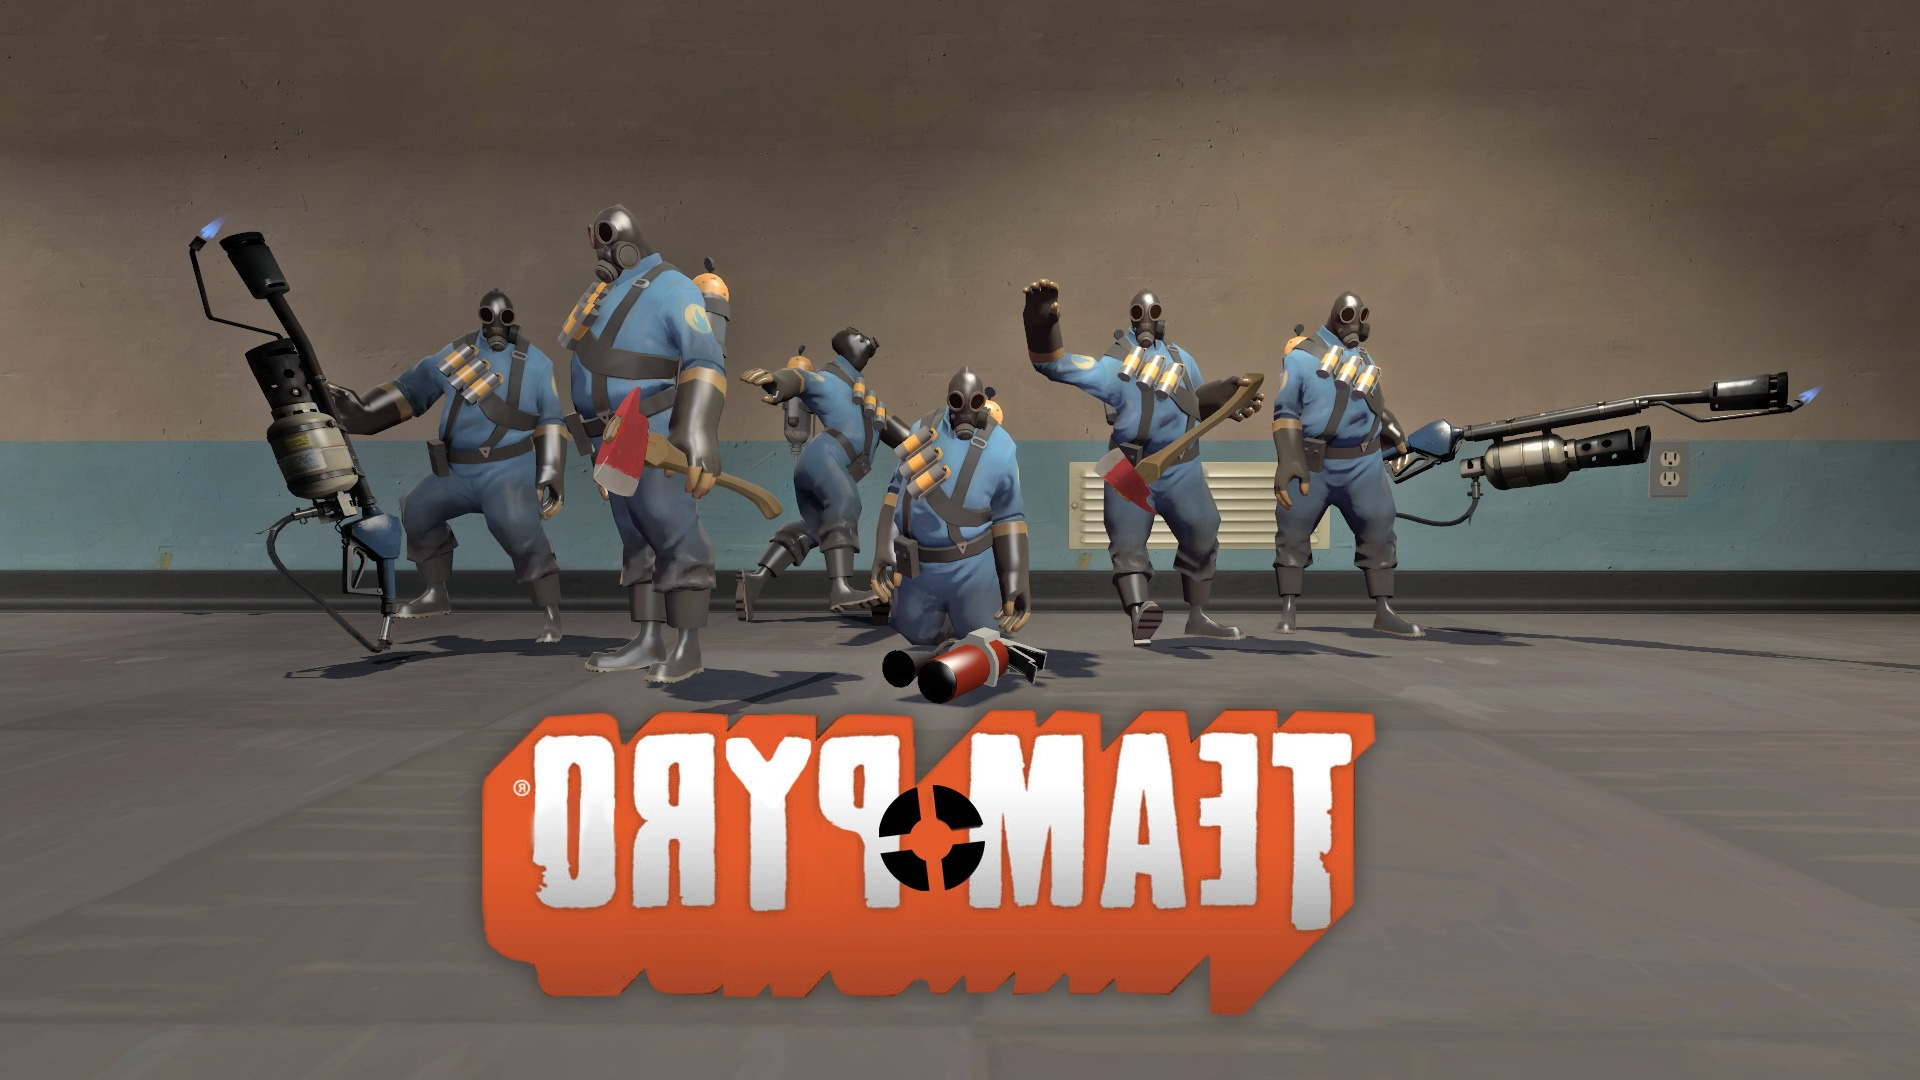 Team Fortress 2 Backgrounds Posted By Ethan Mercado